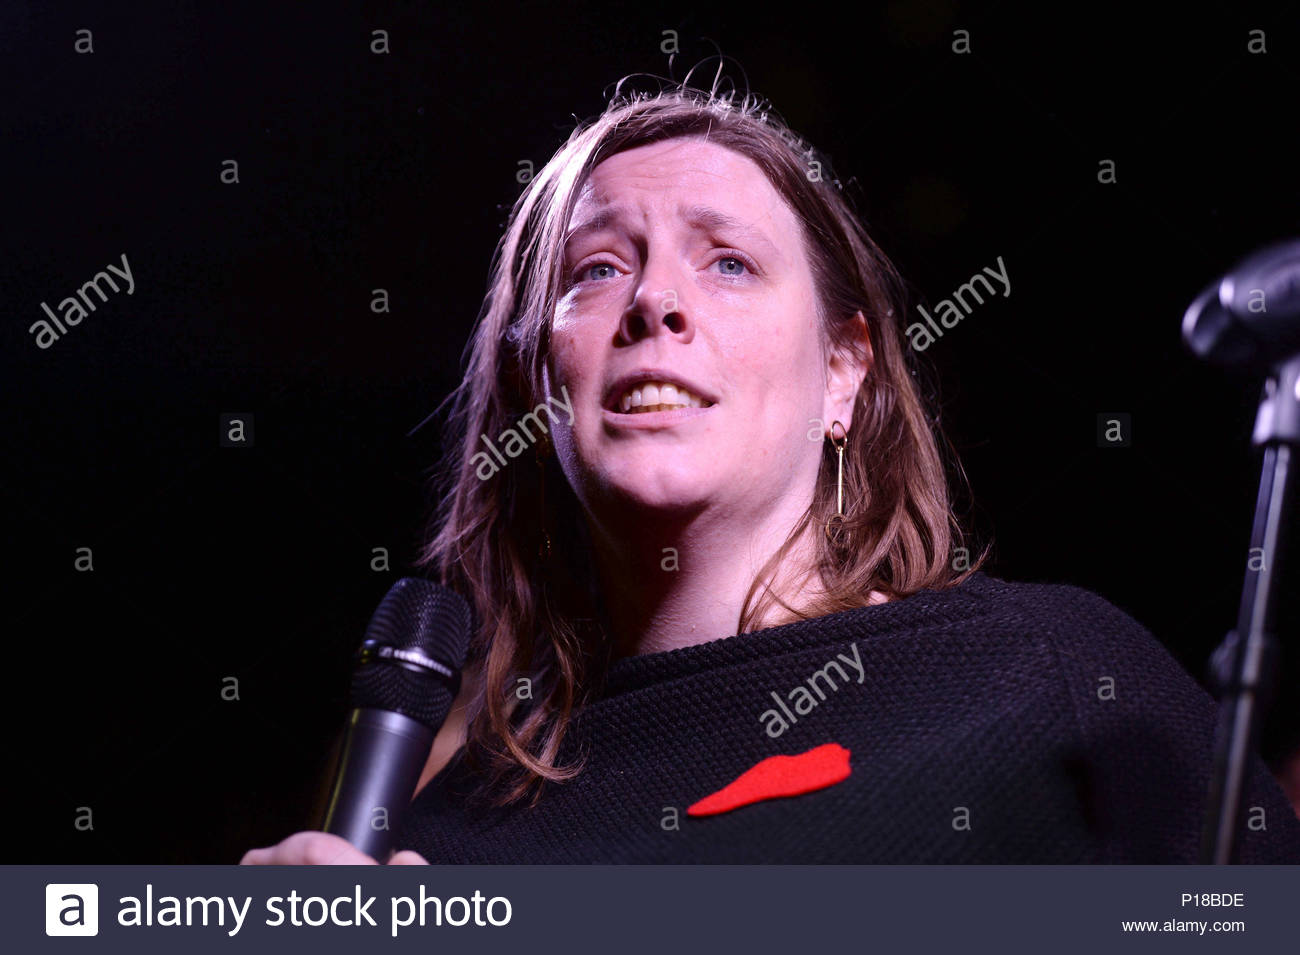 Jess Phillips Stock Photos & Jess Phillips Stock Images ...